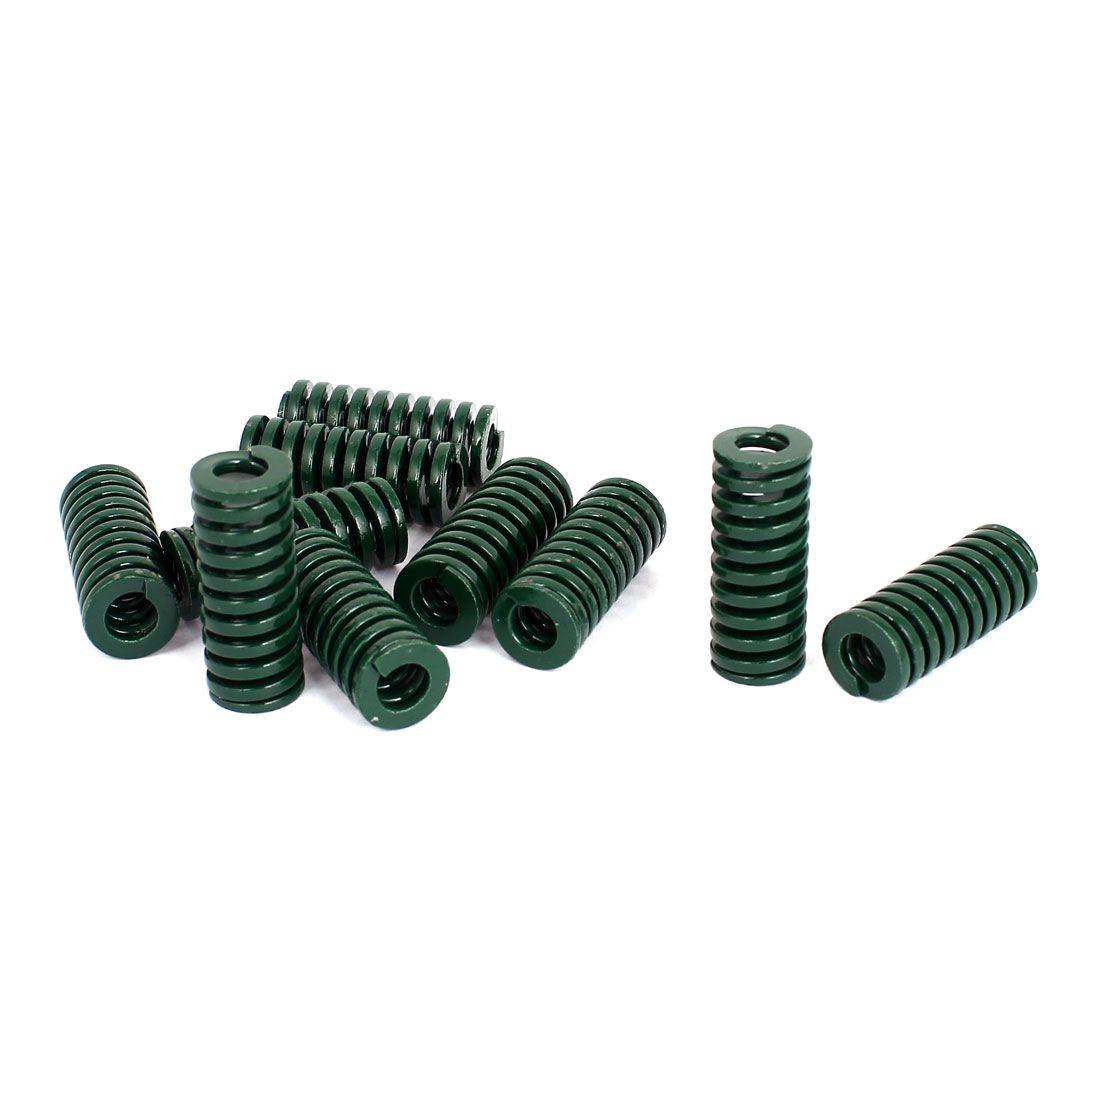 16mm OD 40mm Long Heavy Load Stamping Compression Mold Die Spring Green 10pcs